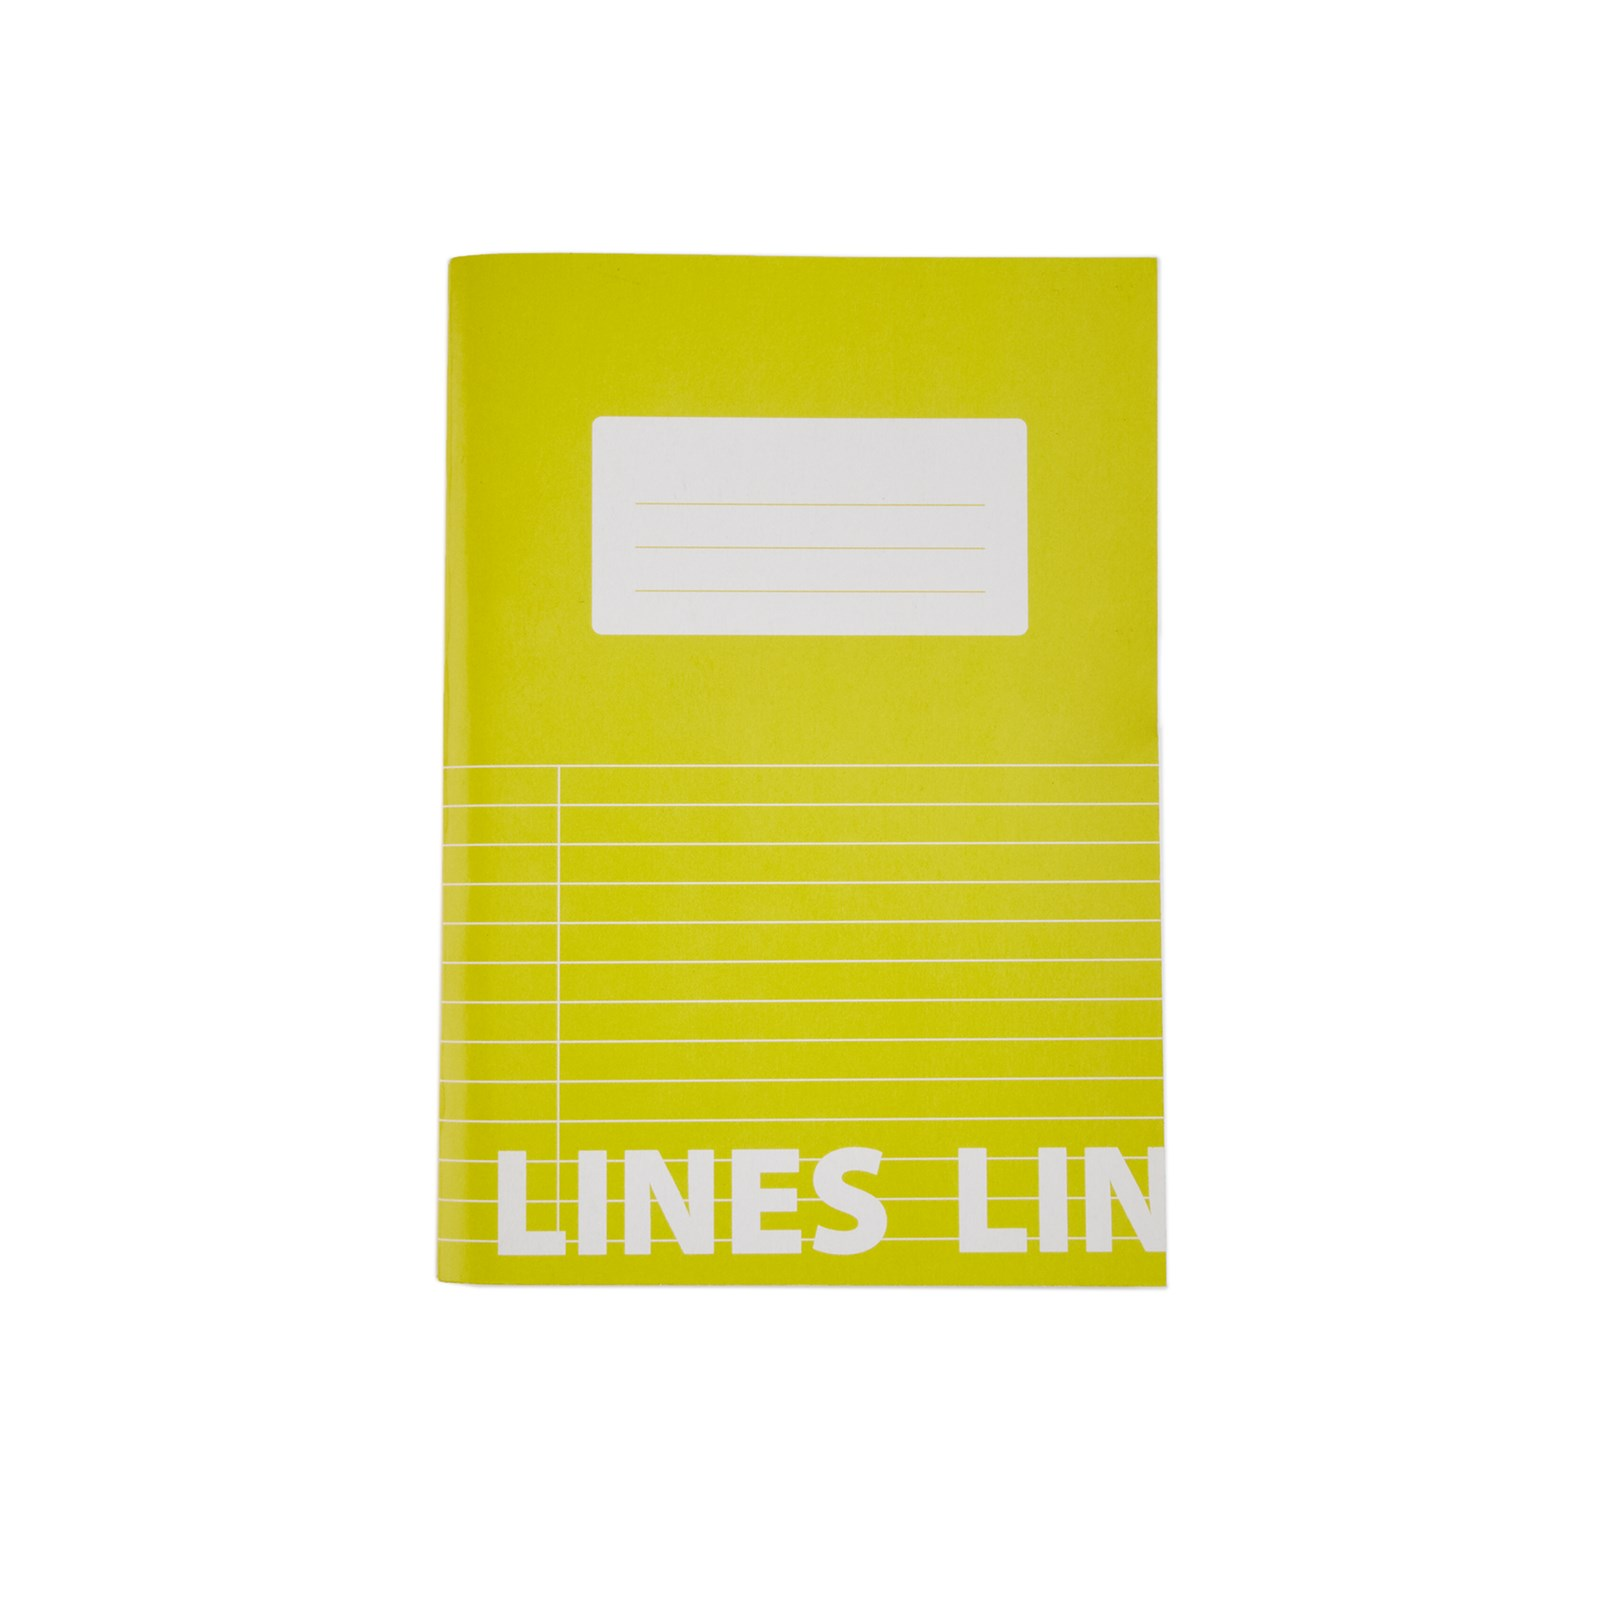 Classmates Yellow A5 Tough Cover Exercise Books 80-Page, 8mm Ruled With Margin - Pack of 50